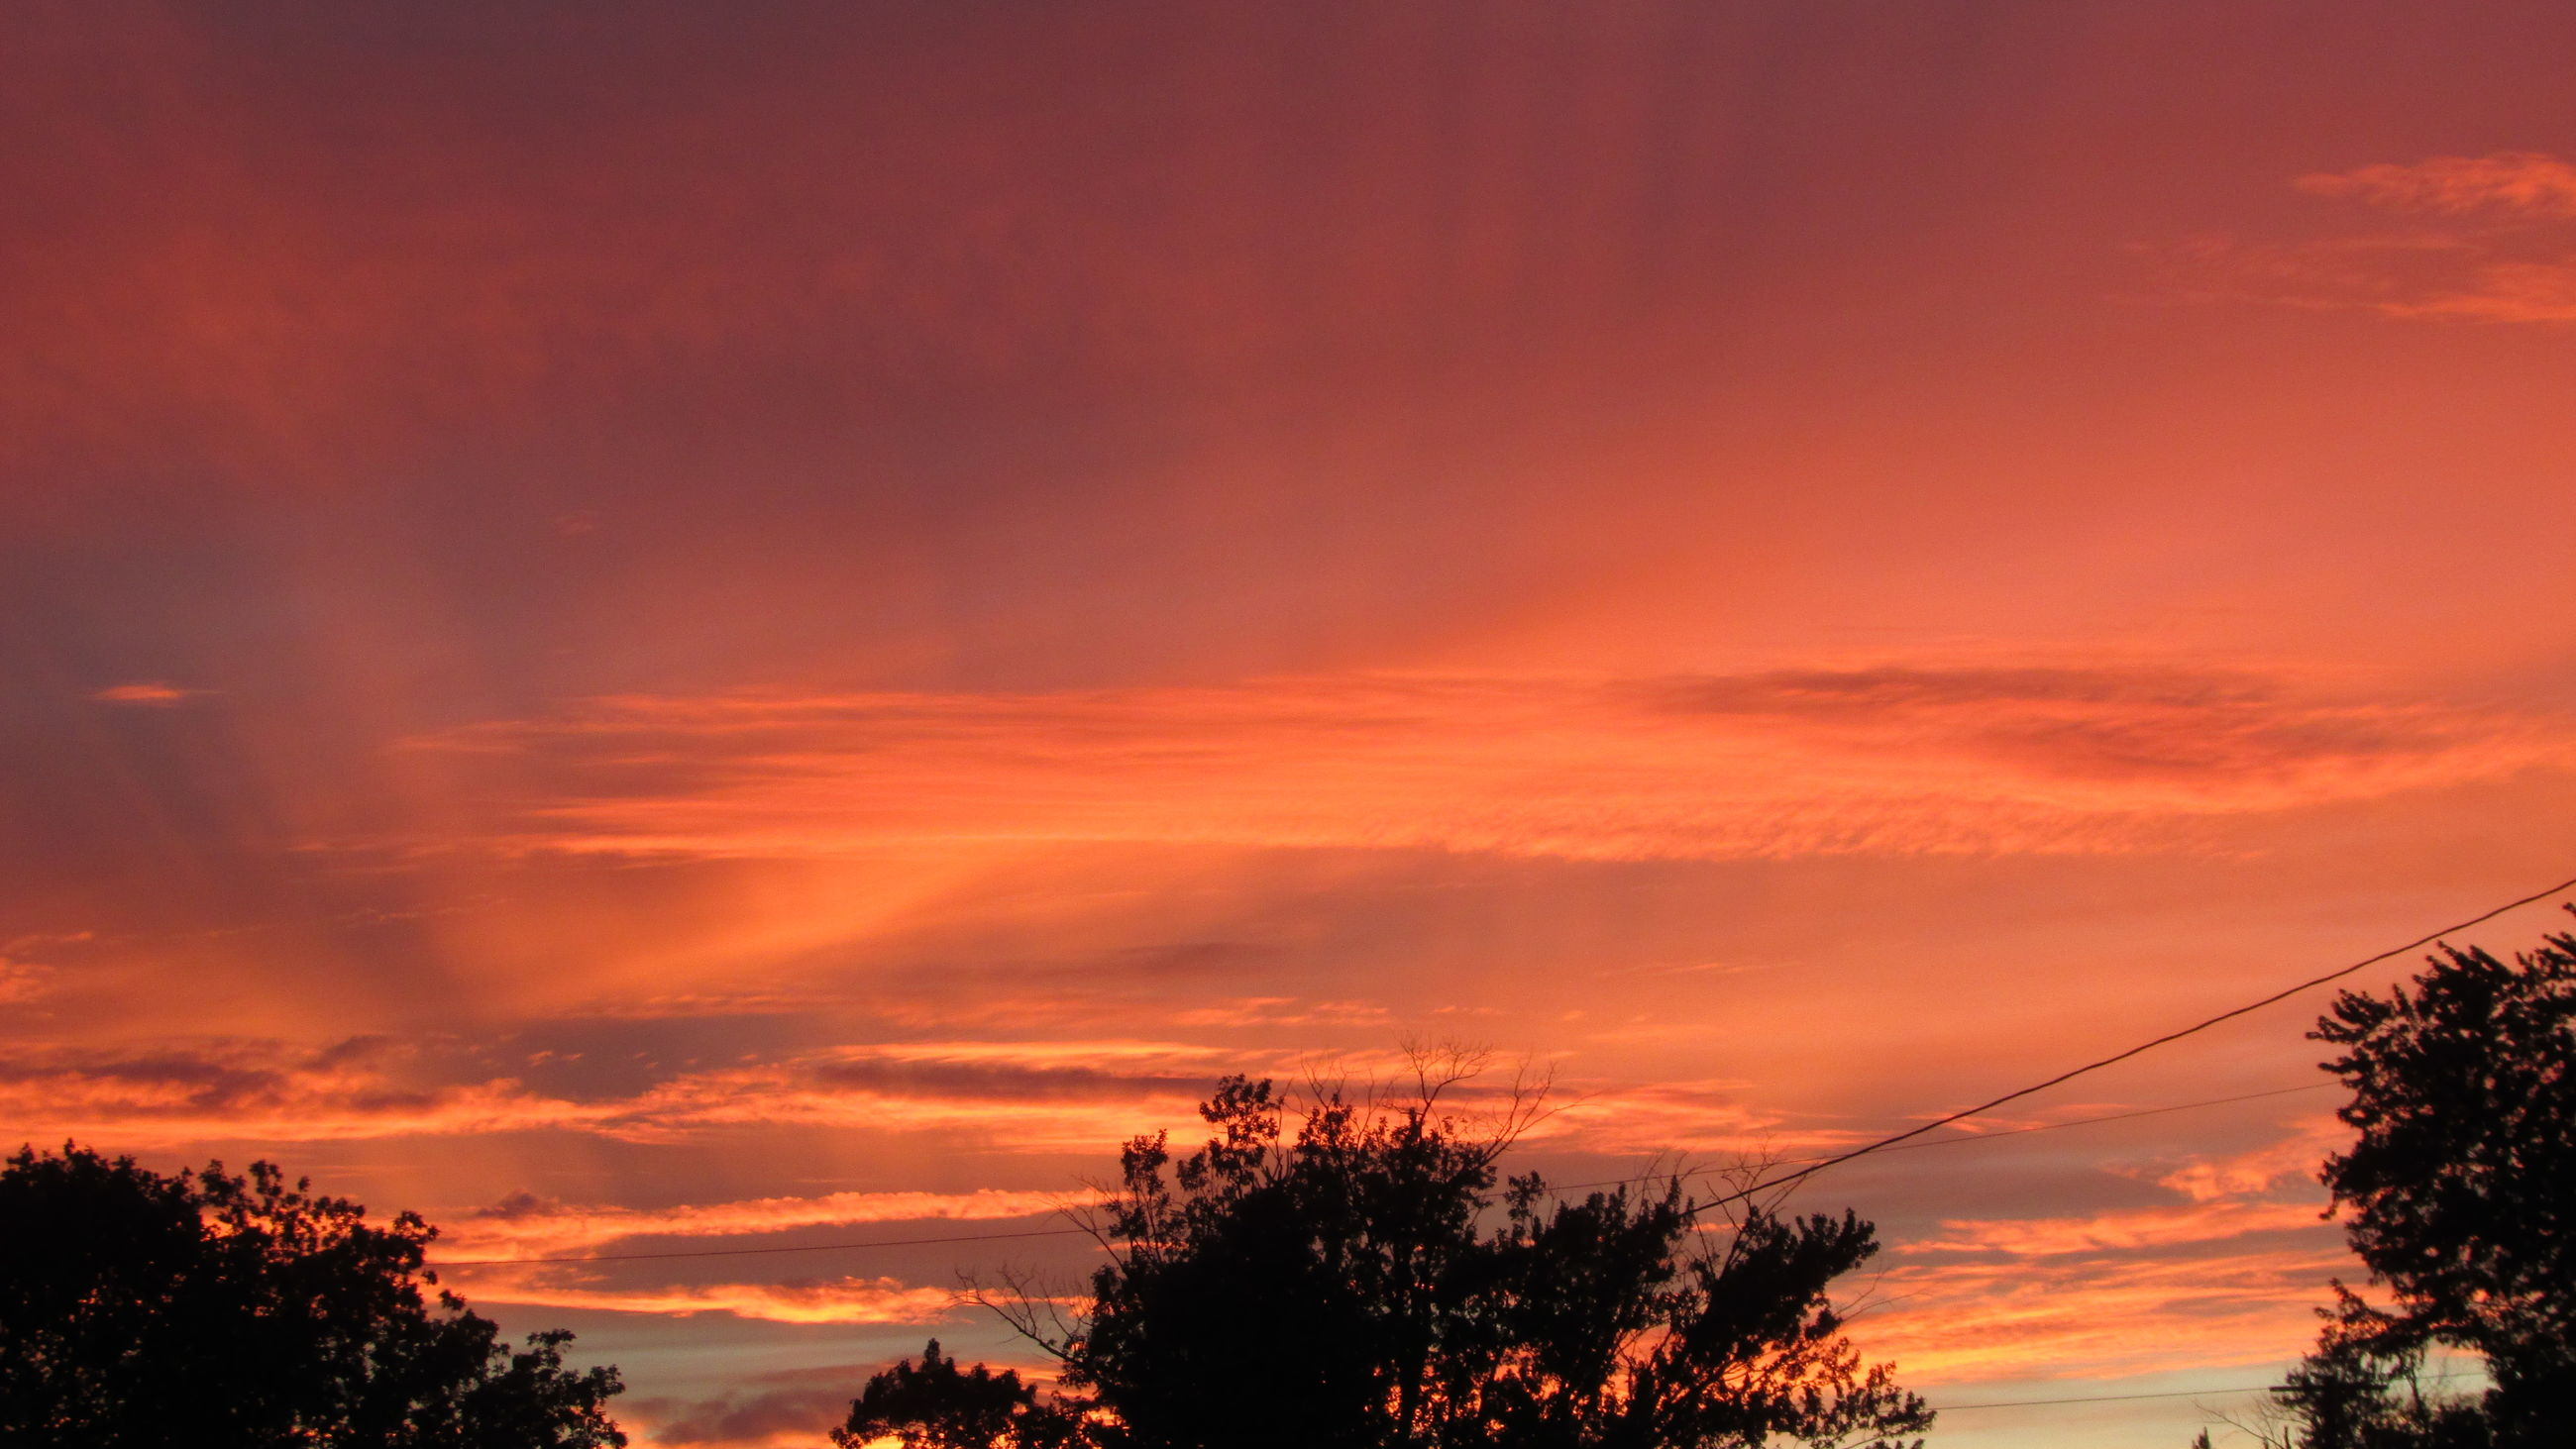 sunset, low angle view, silhouette, tree, sky, orange color, beauty in nature, scenics, tranquility, cloud - sky, nature, tranquil scene, dramatic sky, idyllic, cloud, high section, no people, outdoors, cloudy, growth